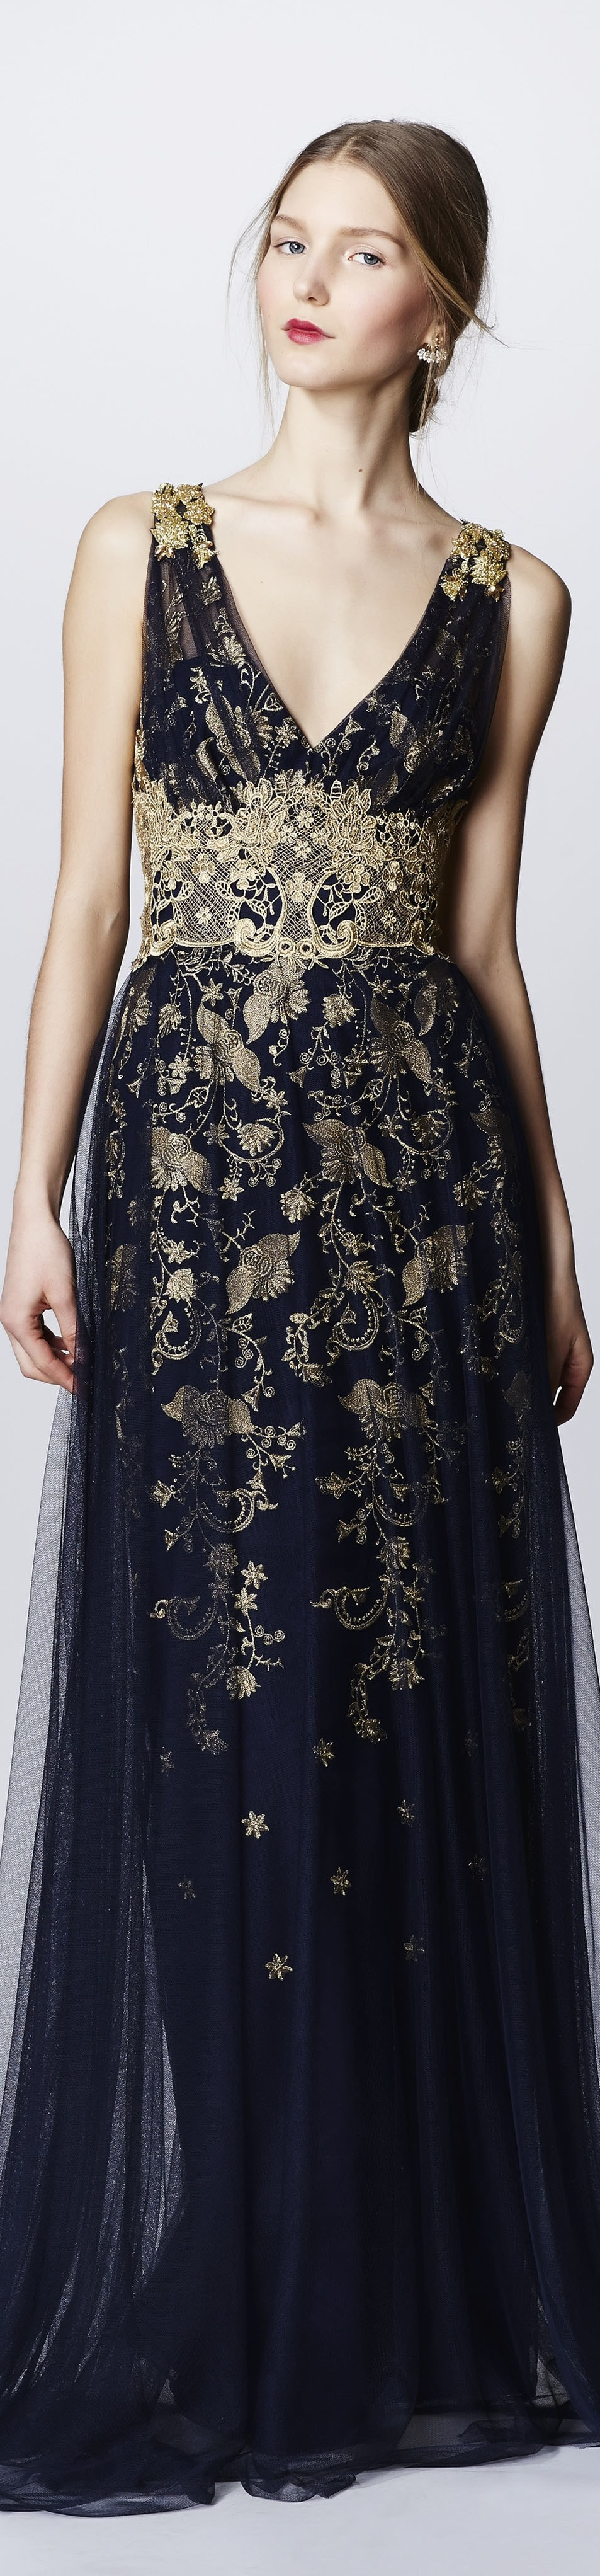 Marchesa Notte fall 2016 RTW vogue                                                                                                                                                      More